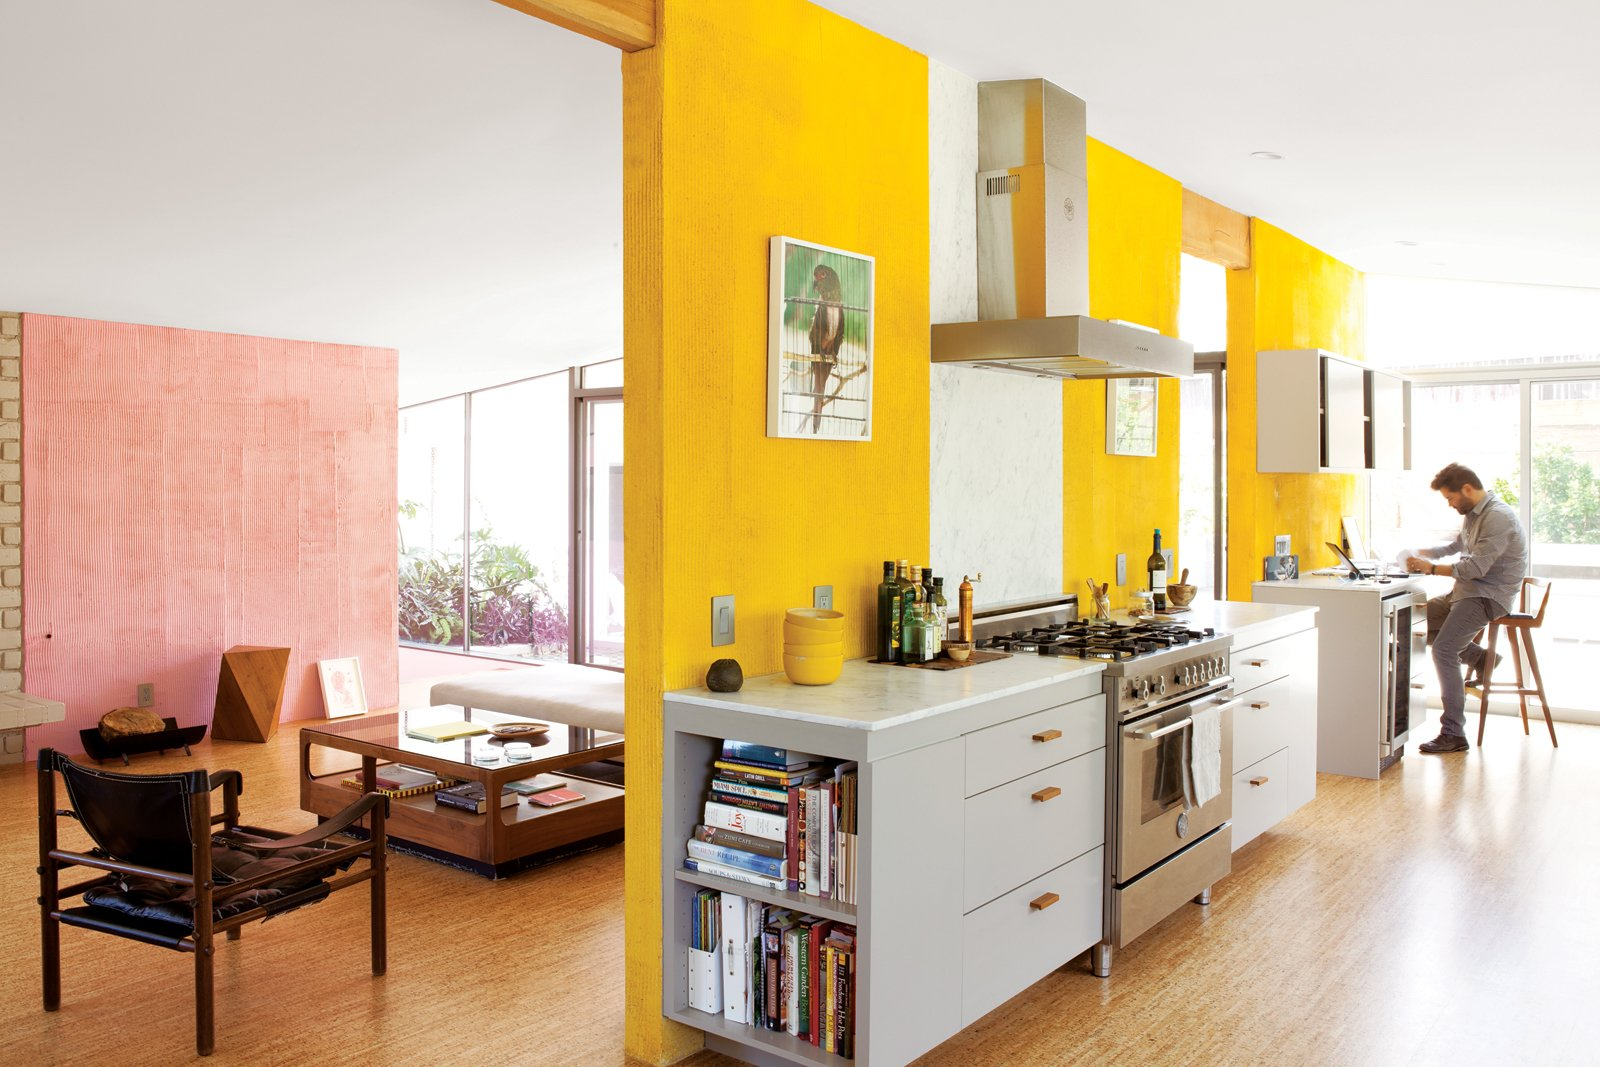 Kitchen, White Cabinet, Range, Range Hood, and Marble Counter How a highly productive collaboration among a trio of creative Angelenas—and a good dose of Barragán—turned a dark and beleaguered midcentury house into a family home for the ages. Photo by Lisa Romerein.  Interior Inspiration: 5 Bold Ways to Use Color by Jaime Gillin from A Fresh Dose of Color Livens Up This Midcentury Los Angeles Home